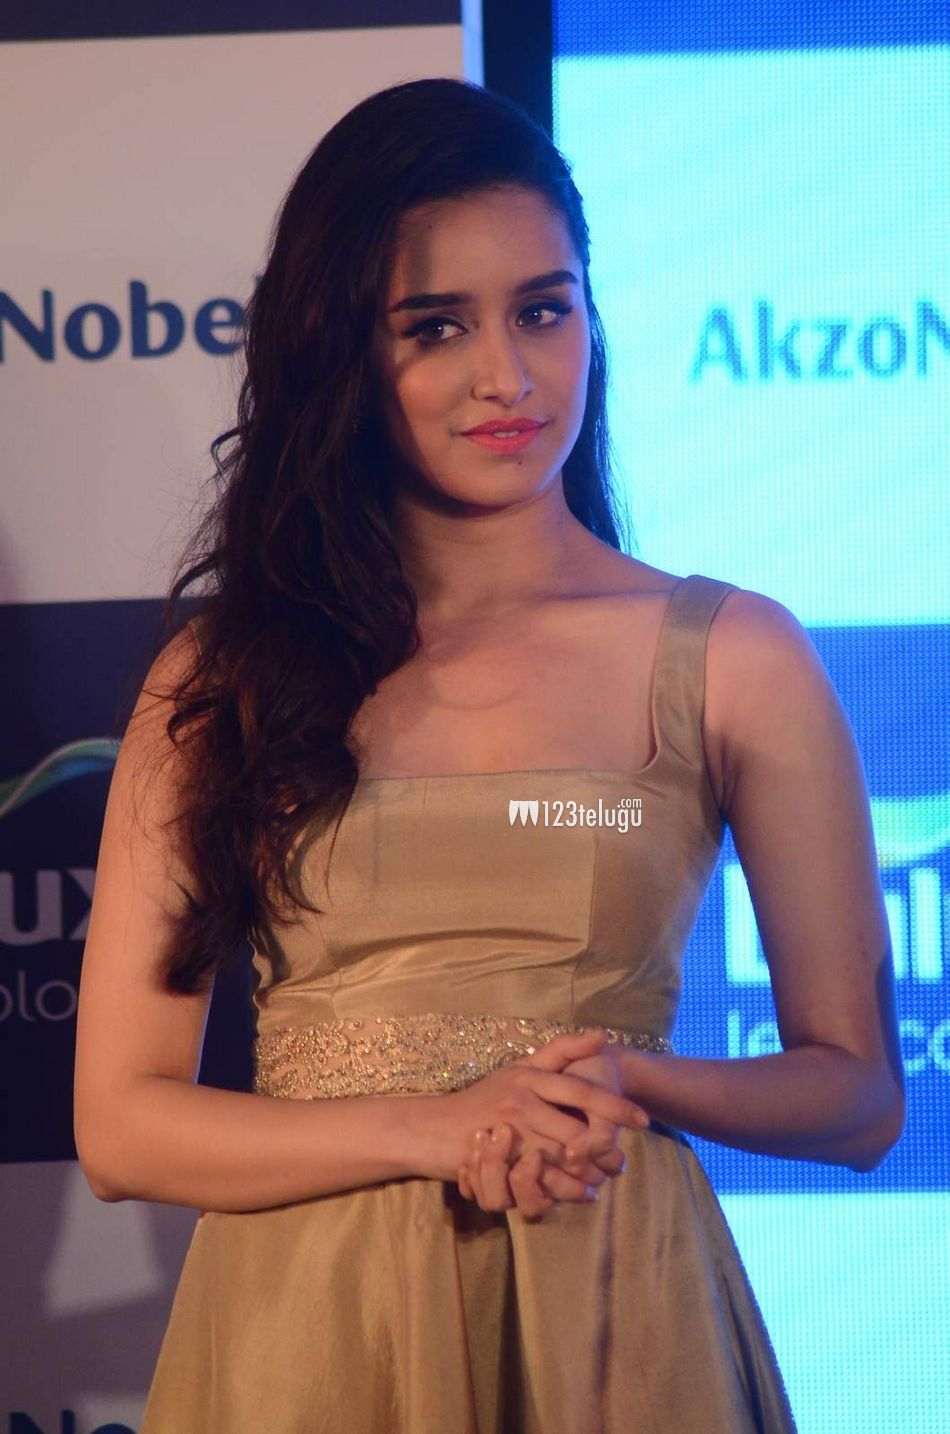 Shraddhakapoor Abcd2 Heroine Actress Bollywood Movie Hindi Cute Sexy Hot Ekvillain Singer Sunsathiya